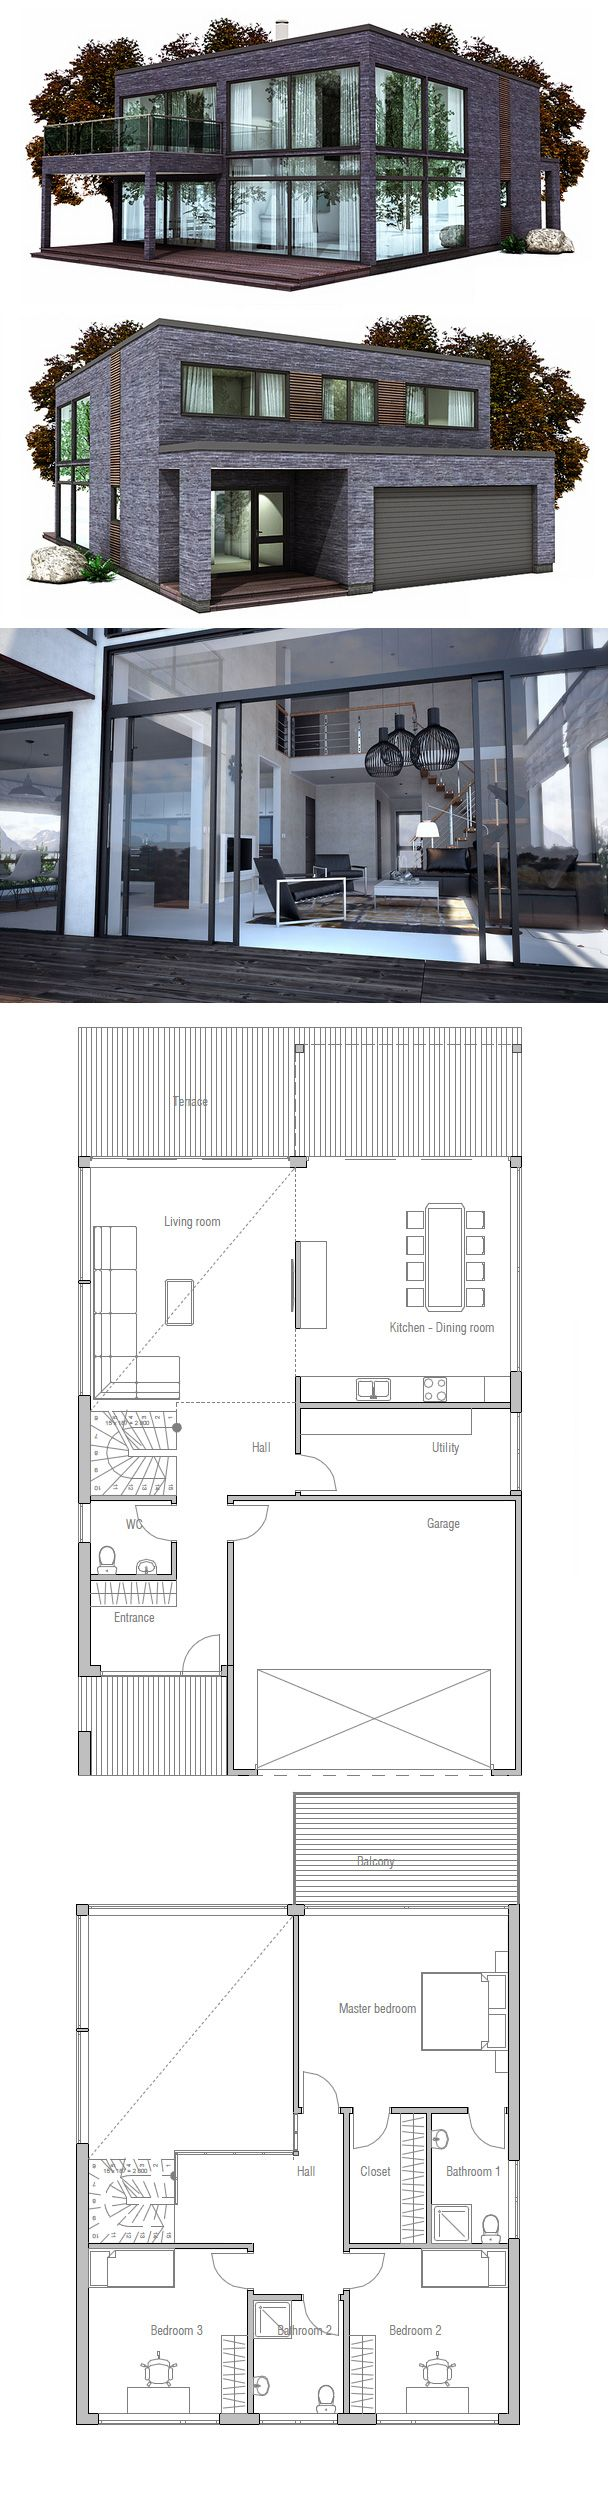 House Architecture Plan the 25+ best modern house plans ideas on pinterest | modern house